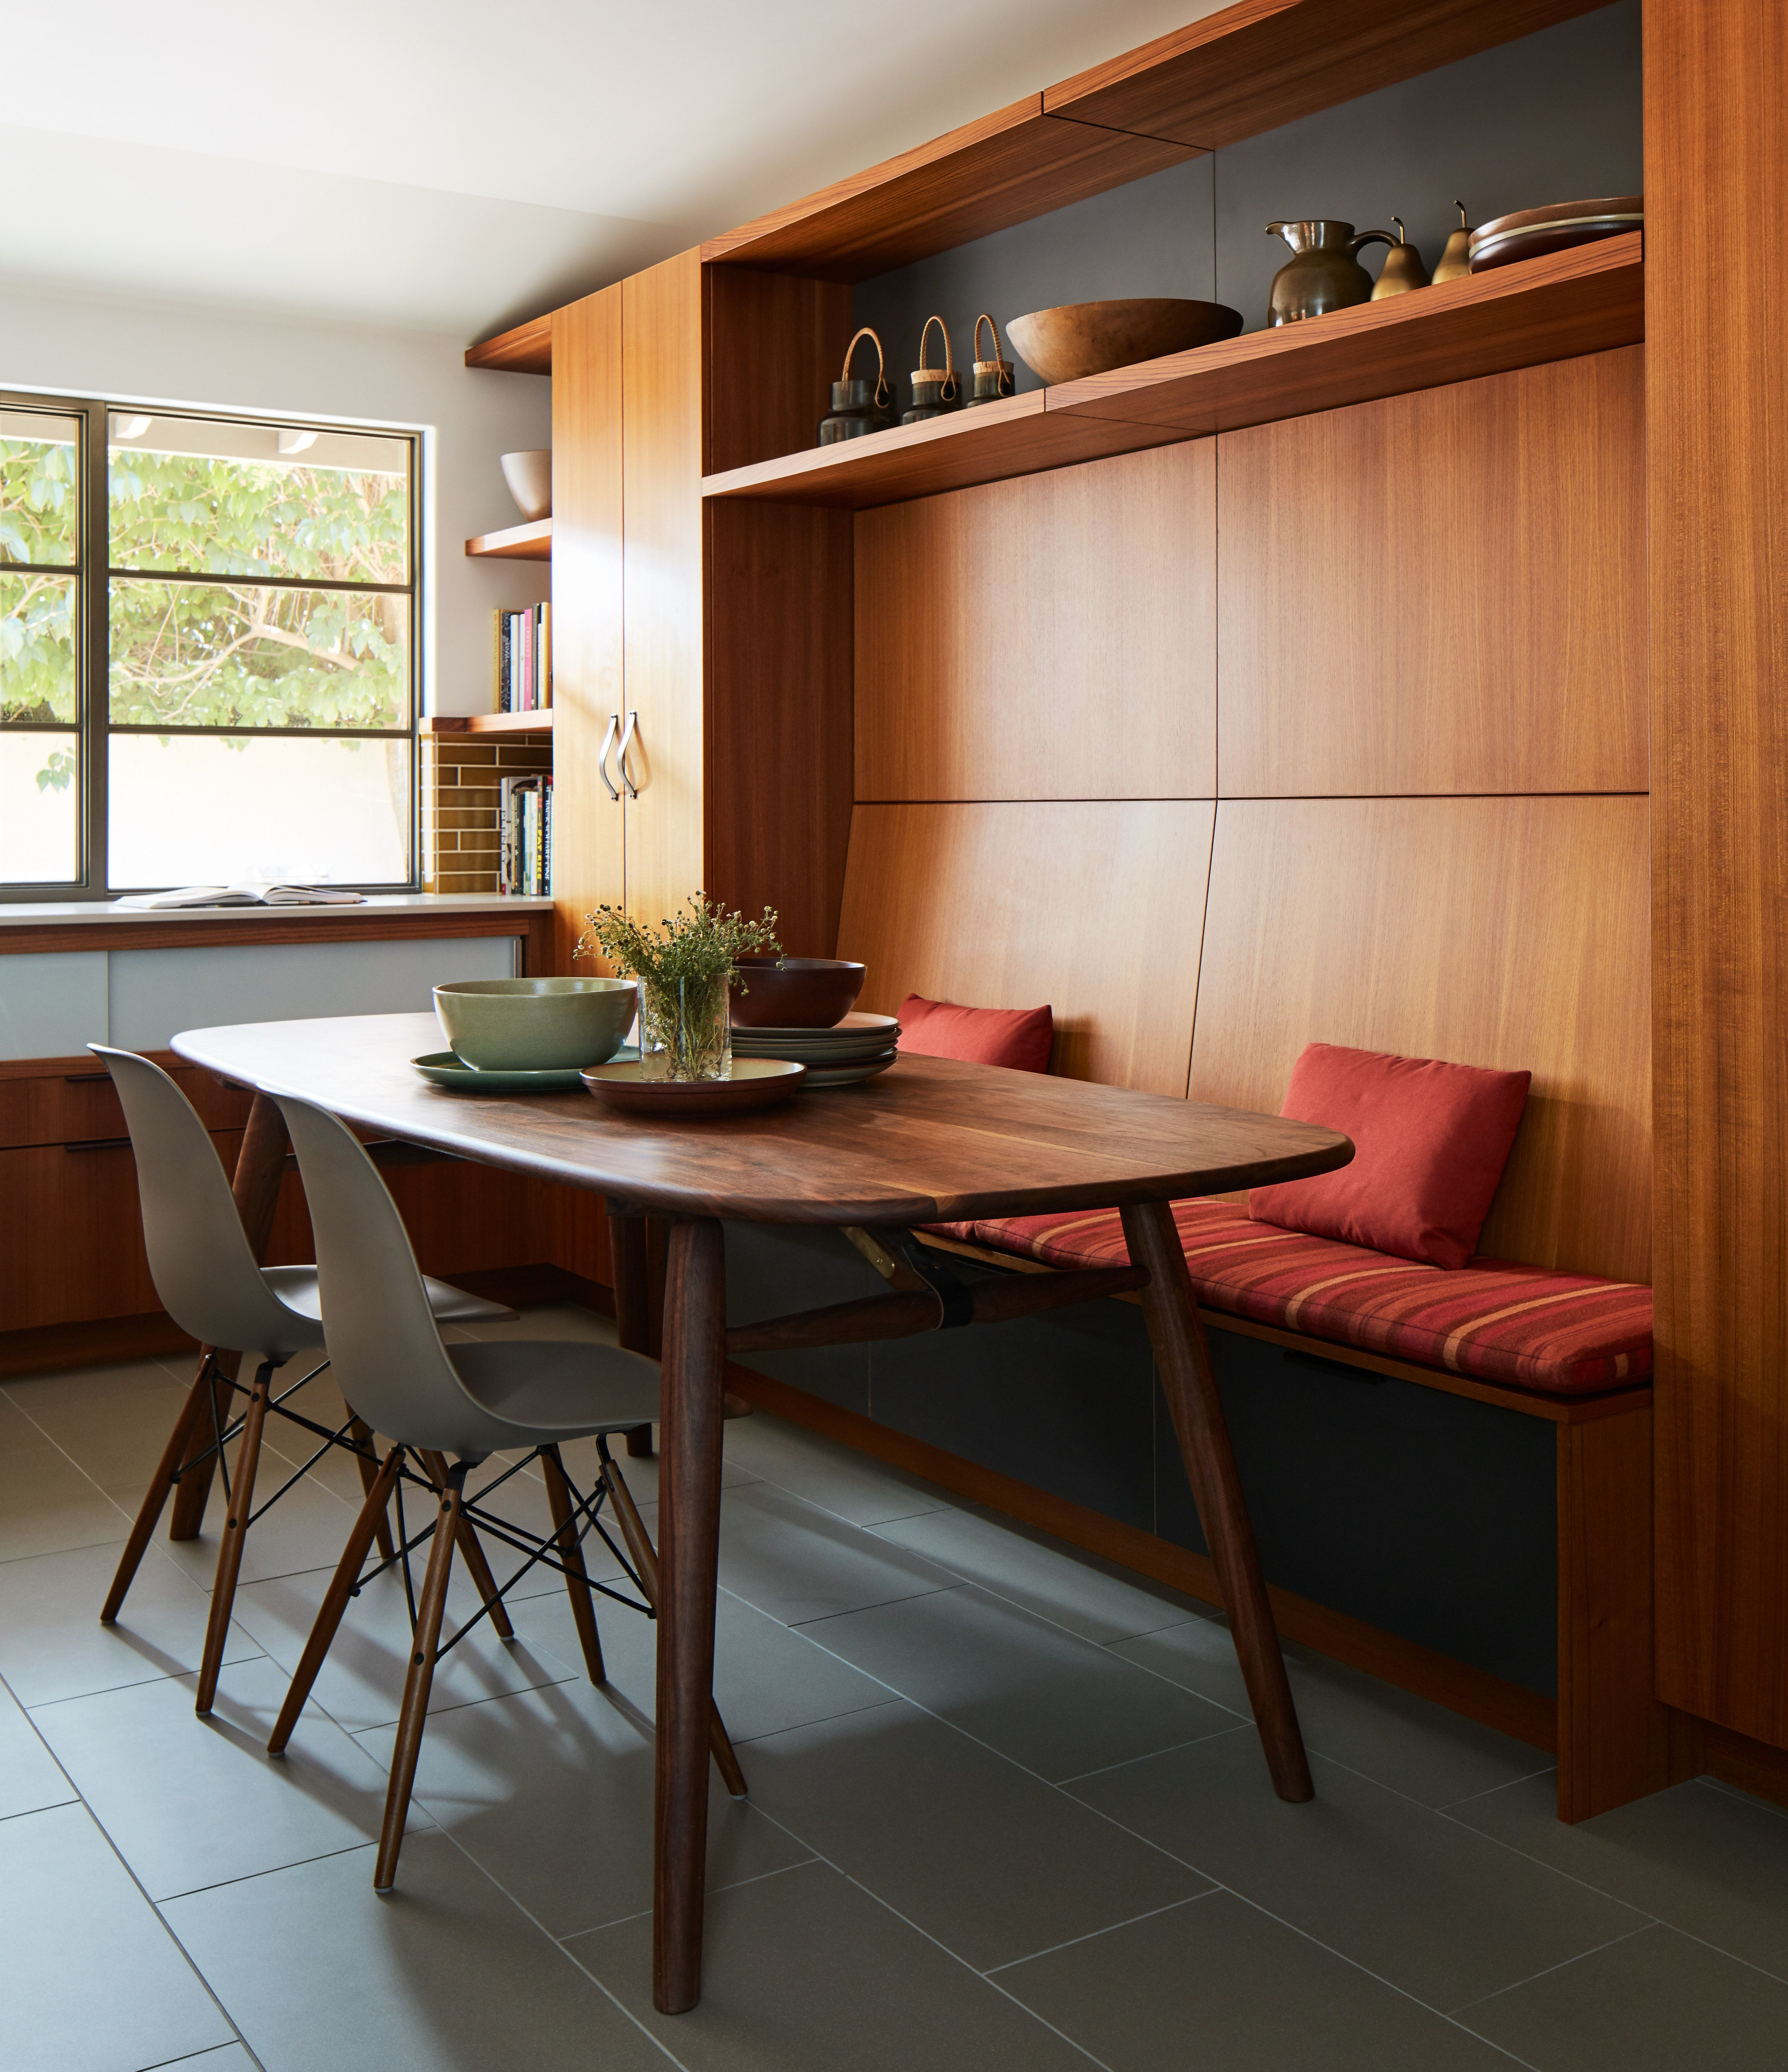 California Revival In Palo Alto  Informal Dining Area In